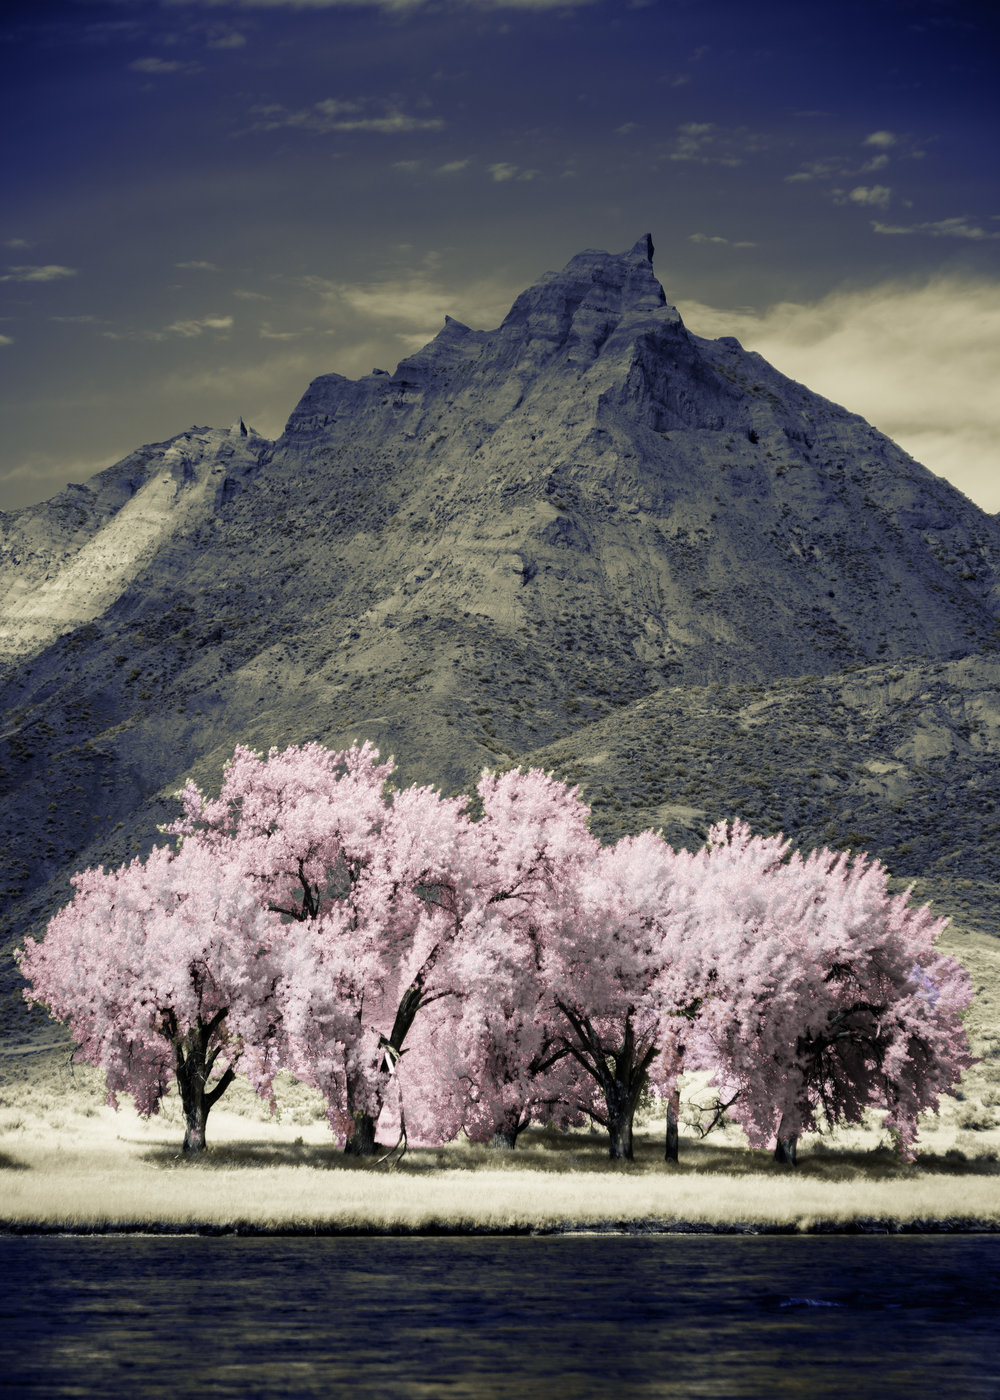 View from the Hagadone Homestead in Infrared